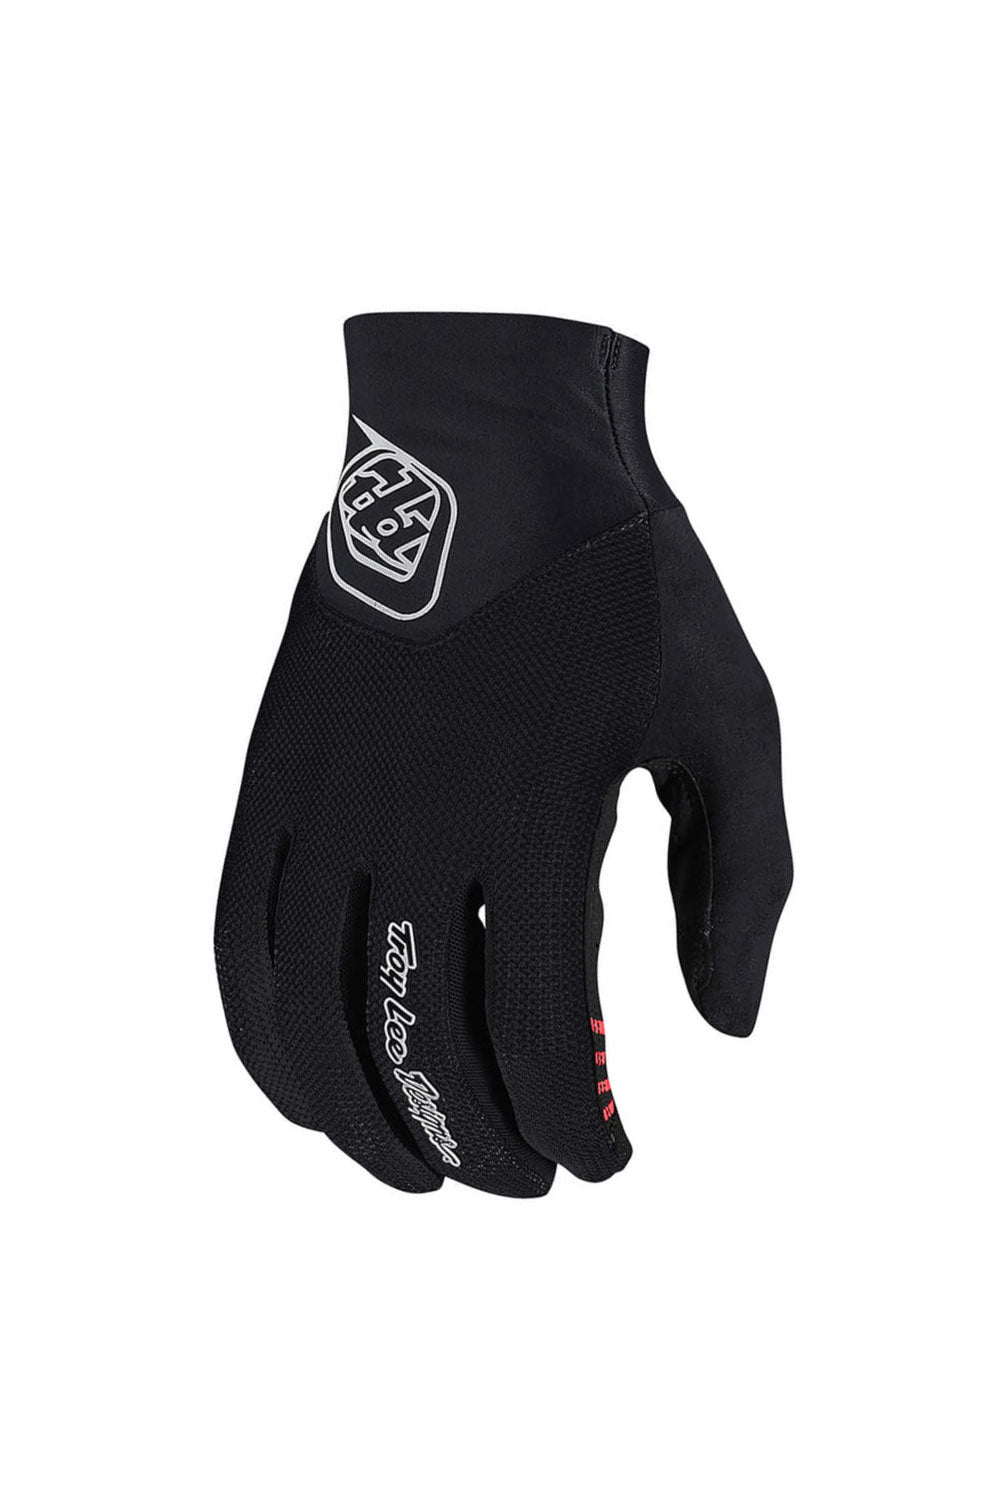 Troy Lee Designs 2020 Ace 2.0 MTB Bike Gloves